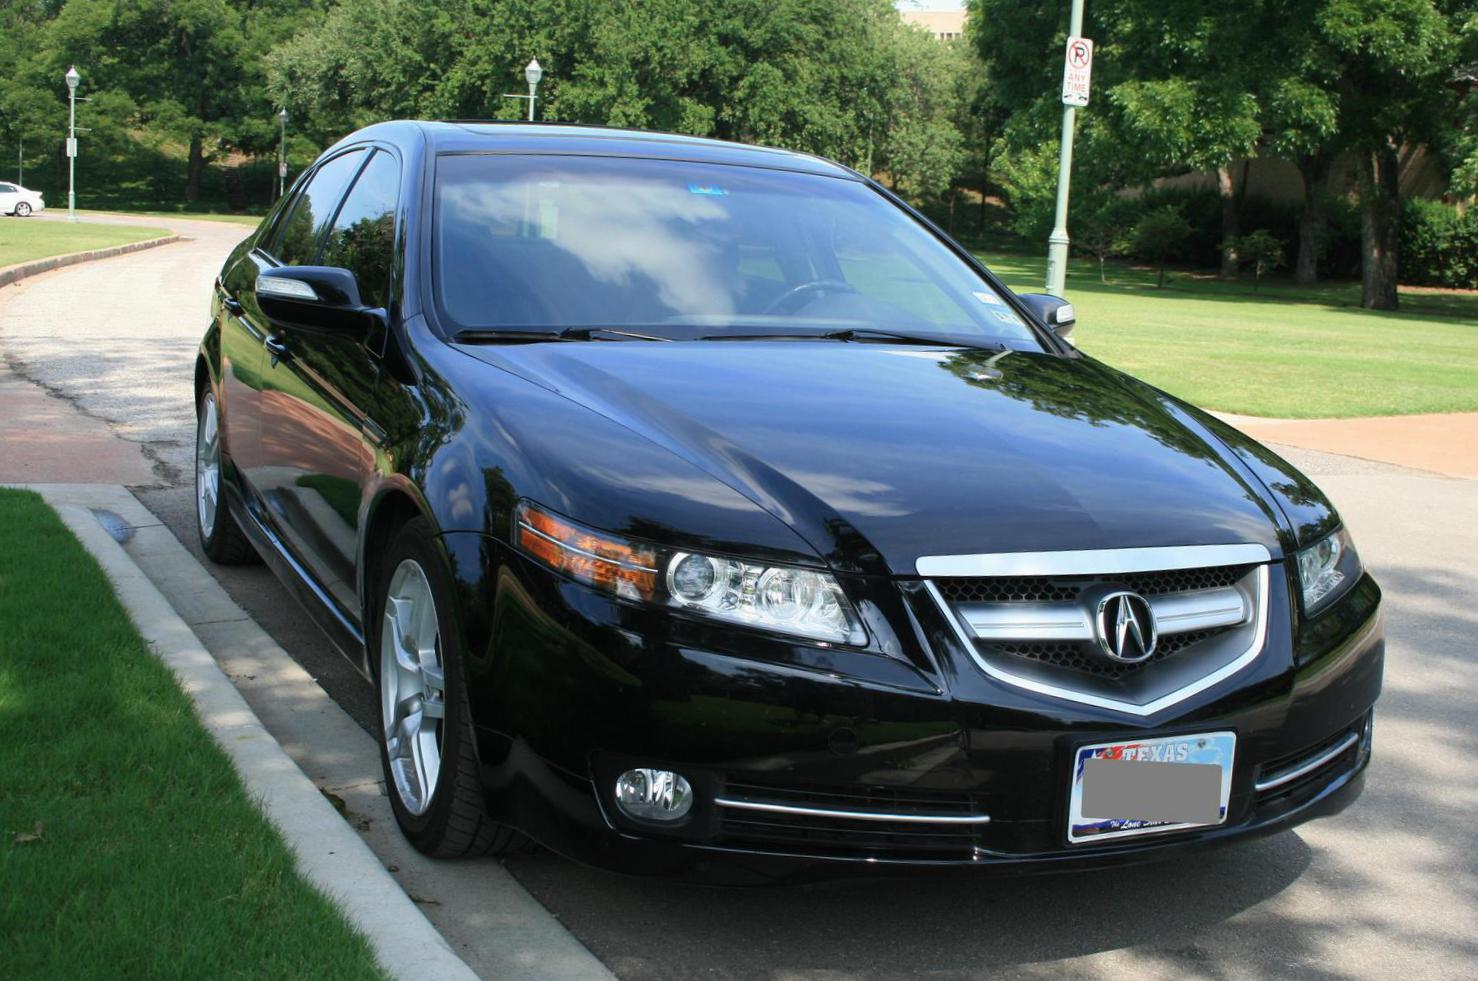 TL Acura approved suv